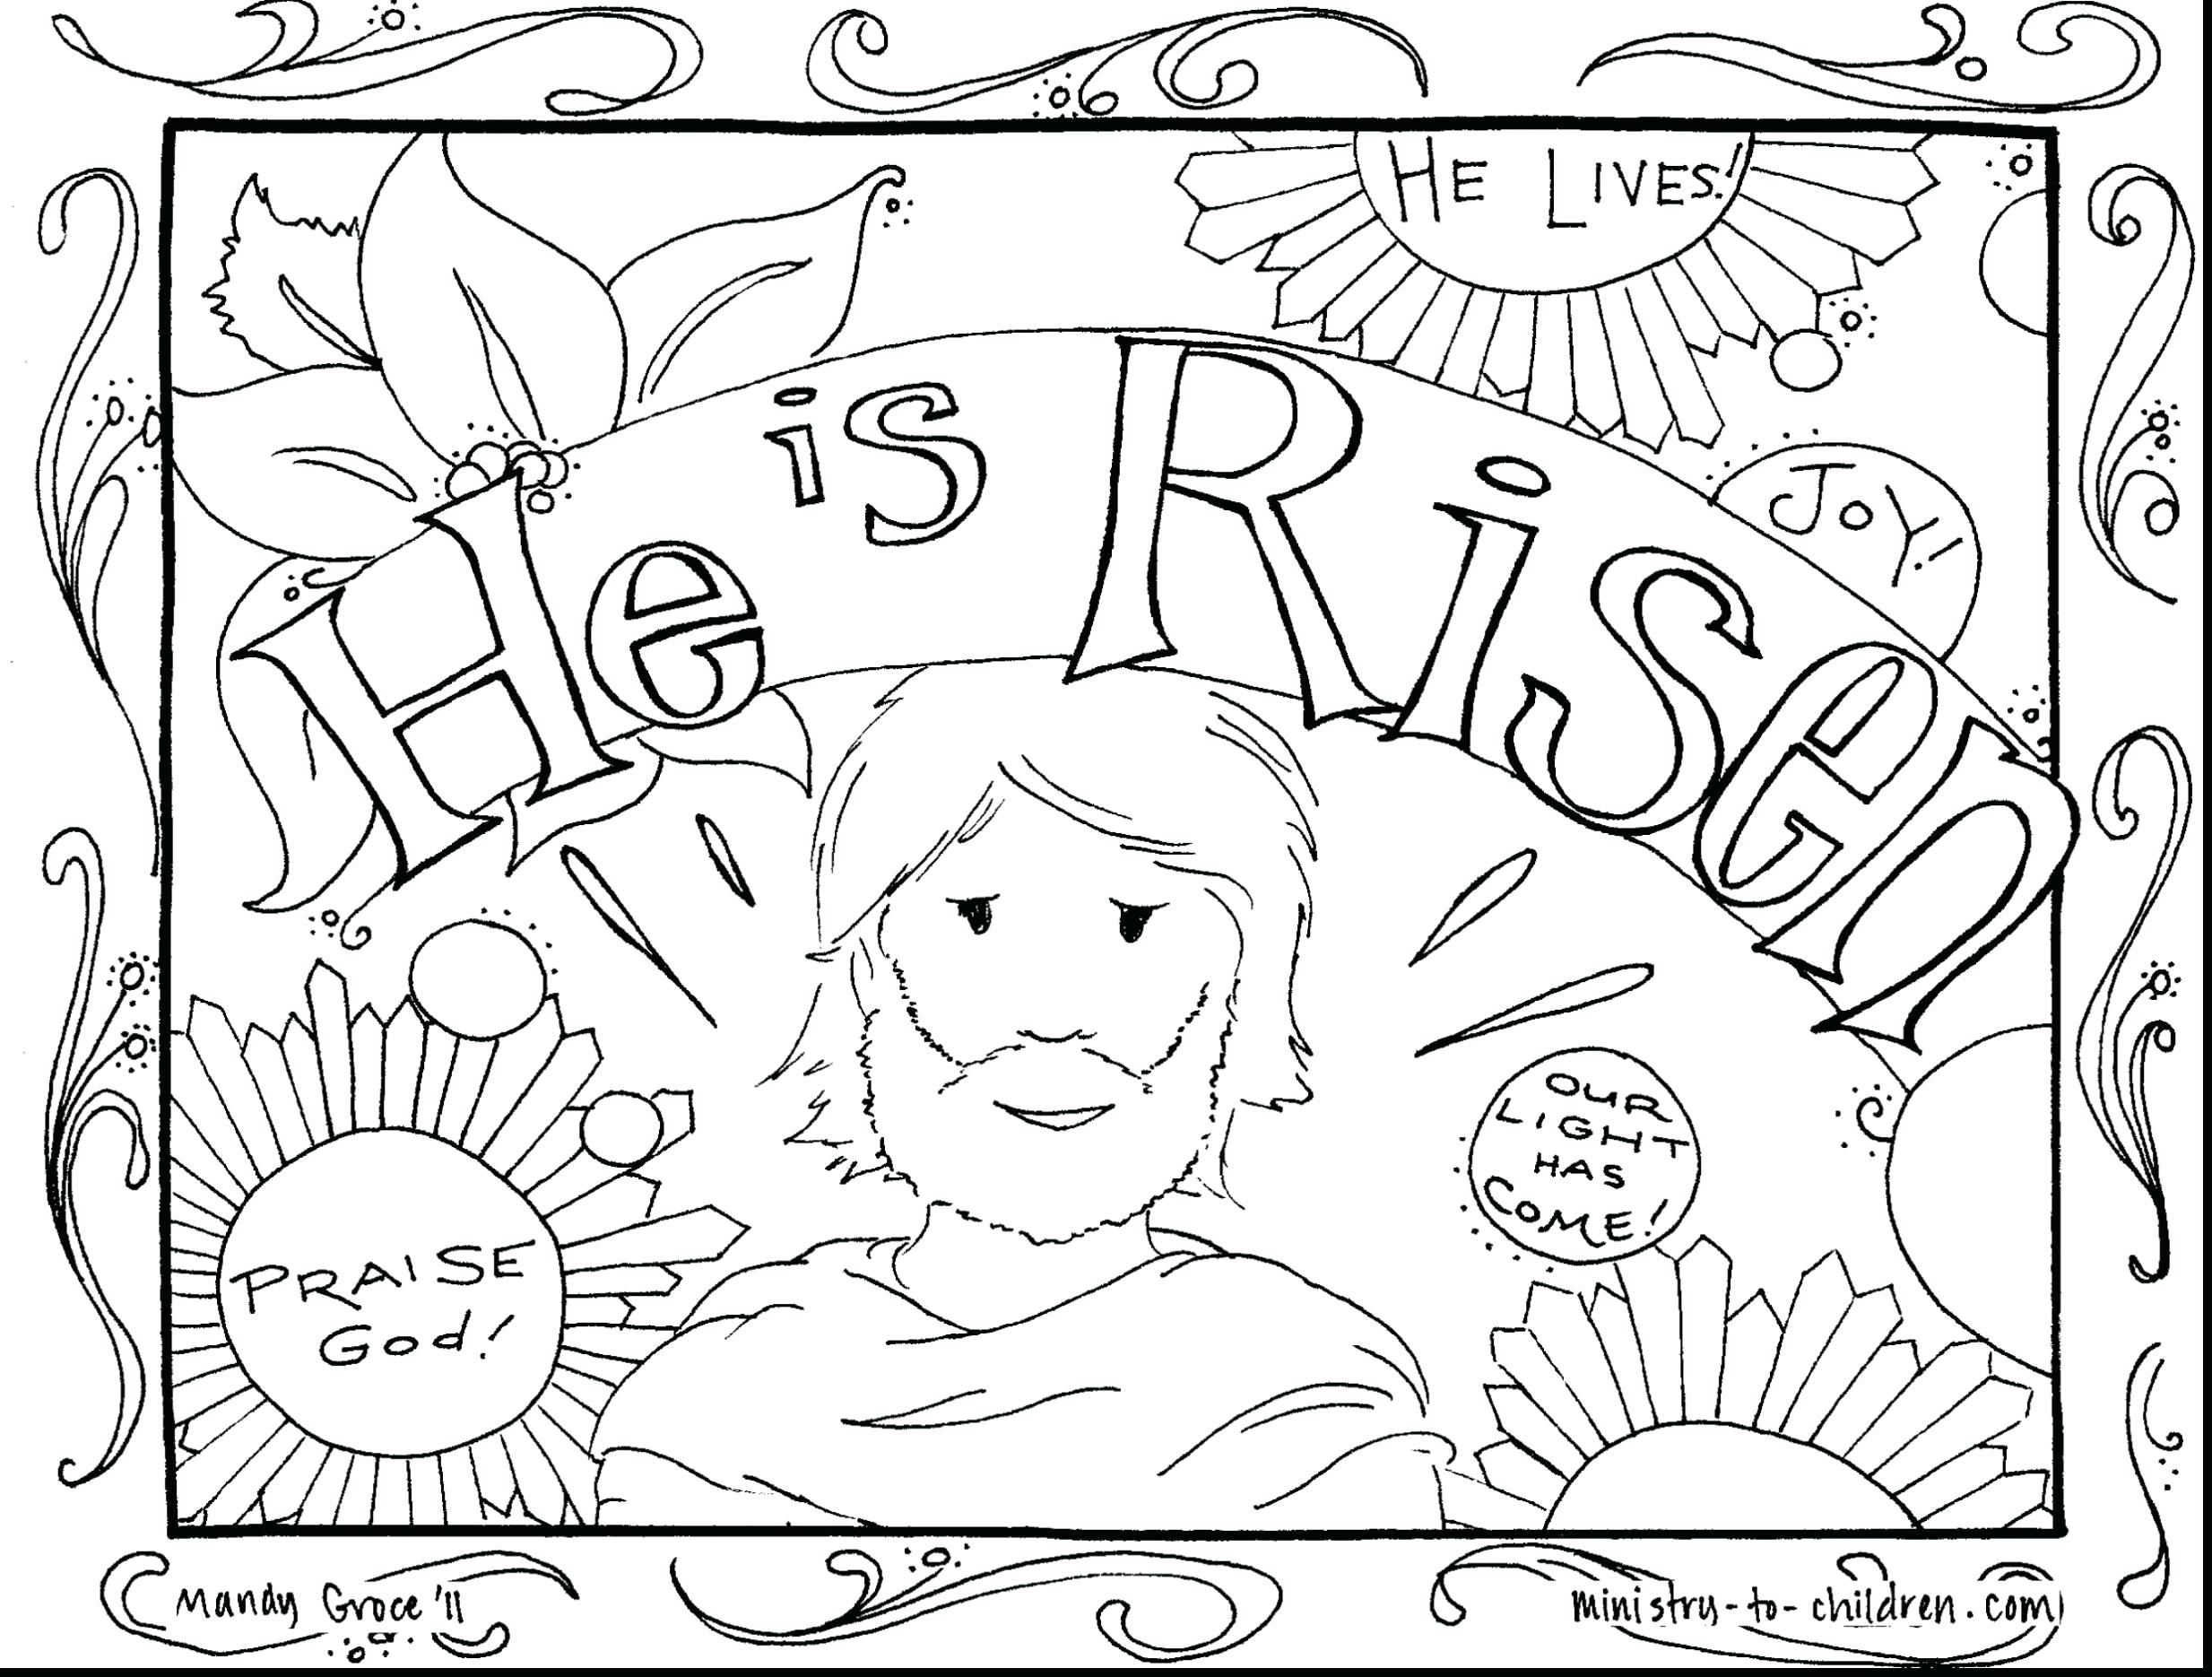 coloring pages easter religious Download-Religious Easter Coloring Pages for Adults Coloring Pages Religious Good Freer Preschoolers Bible toddlers 4-r